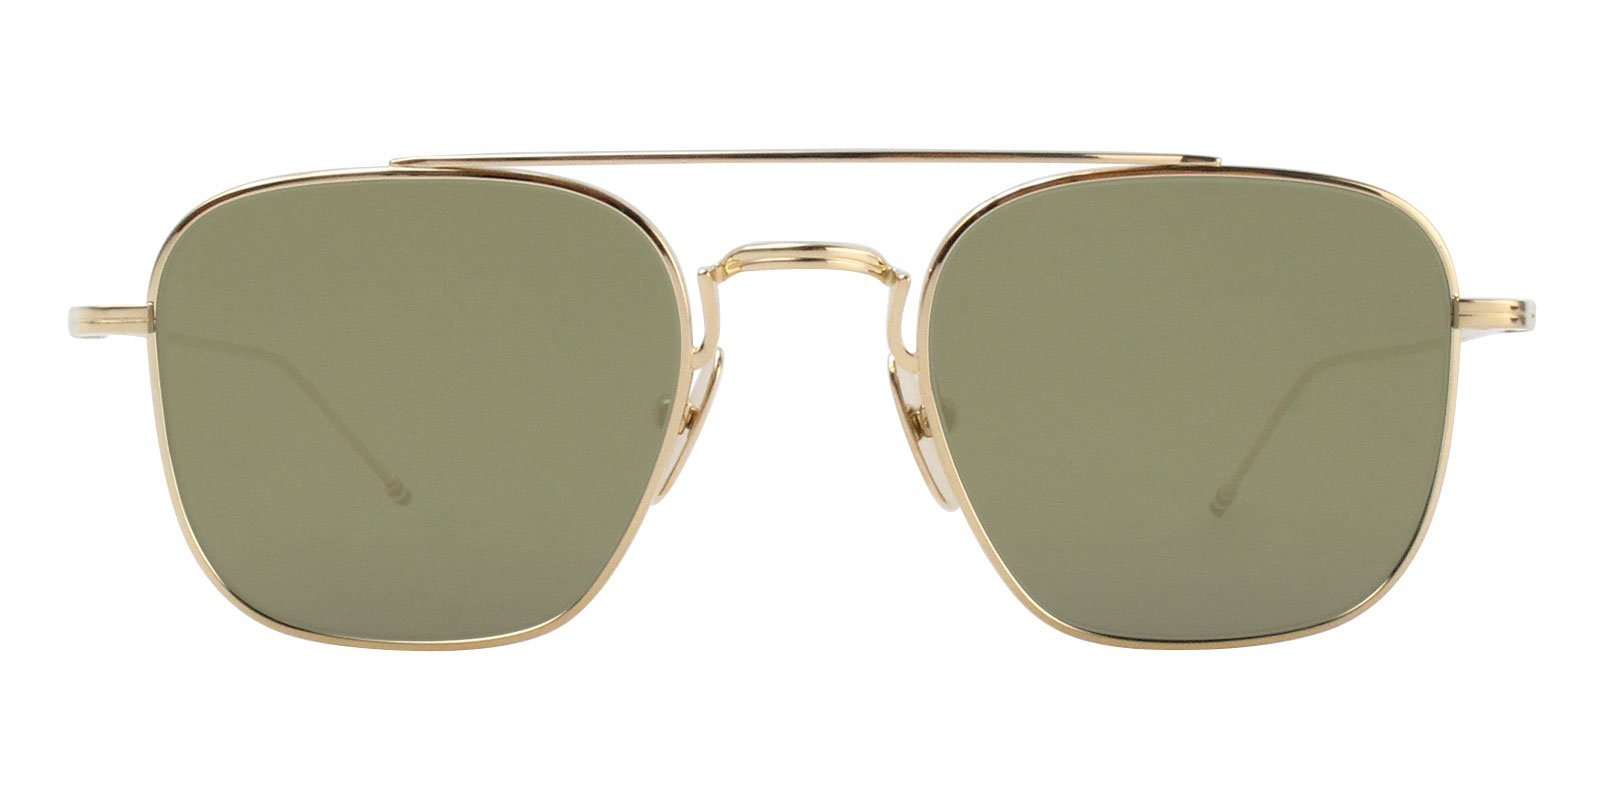 Thom Browne - TBS907-50-01 Gold - Green-sunglasses-Designer Eyes